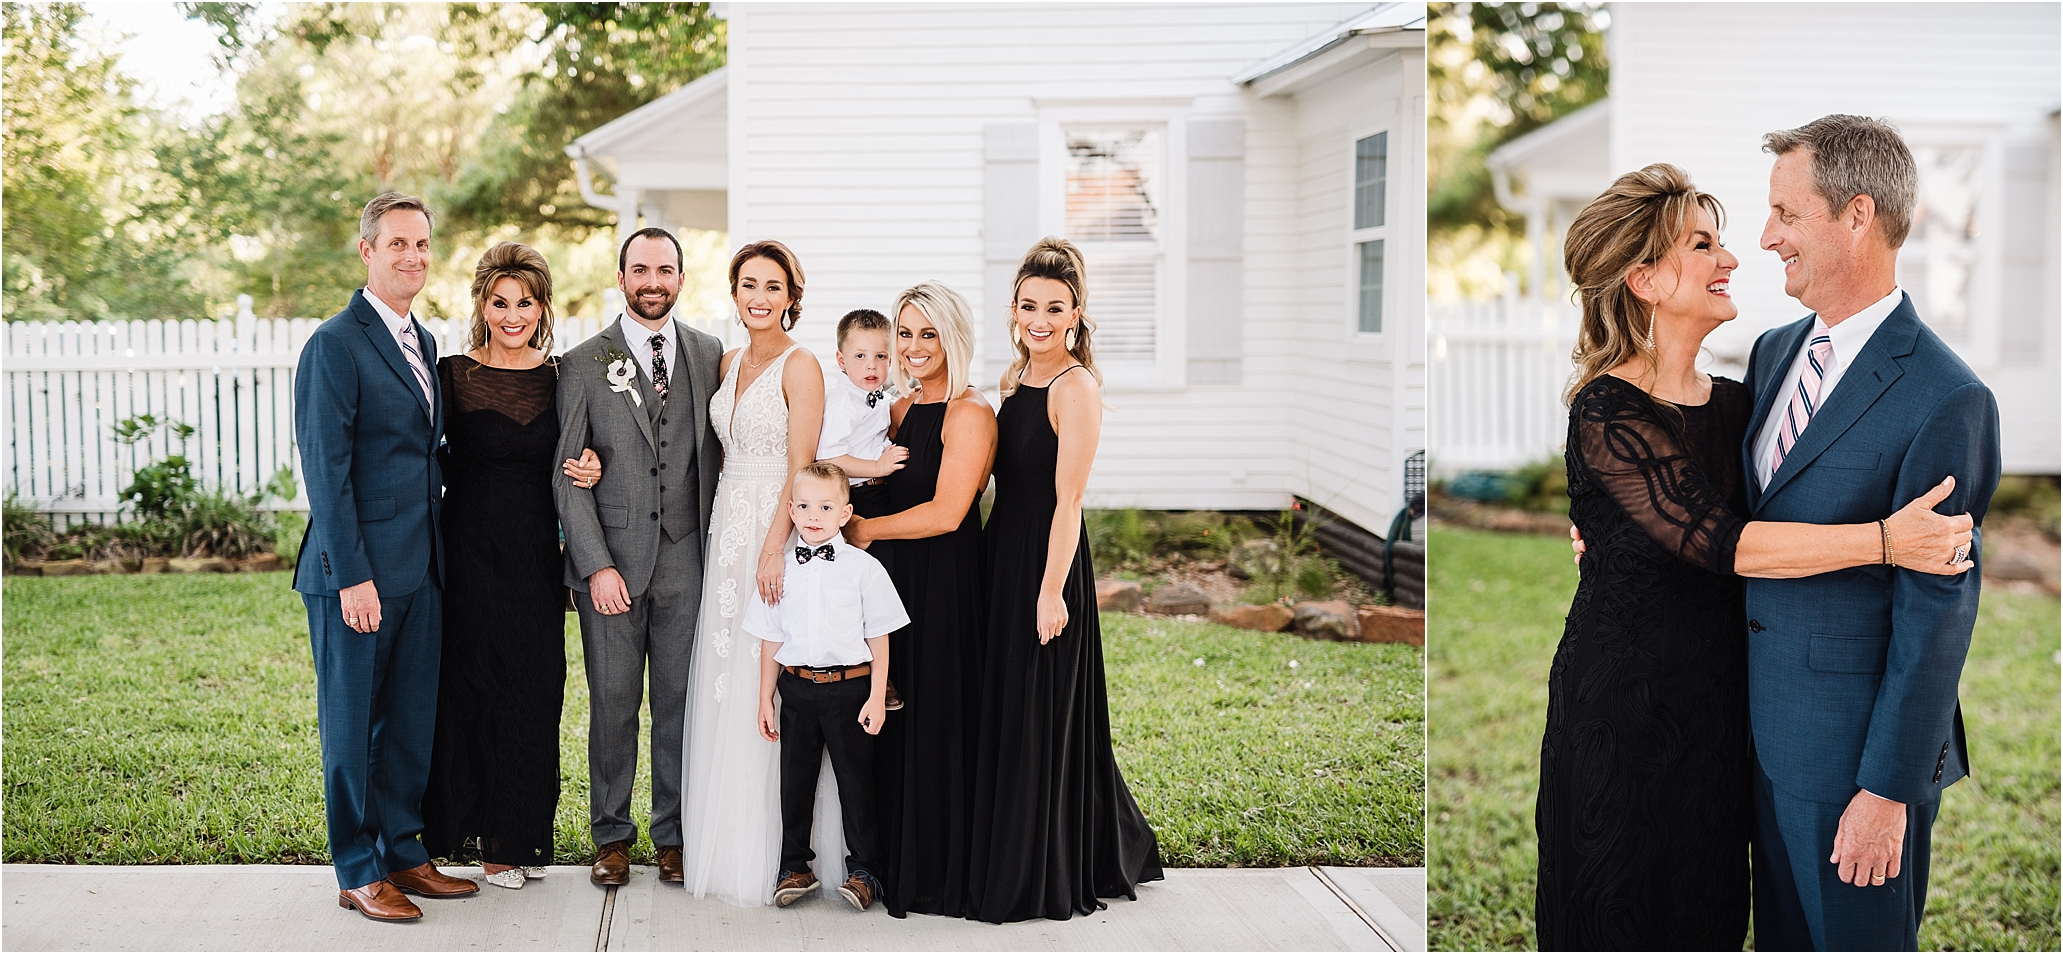 PattisonHouse_TexasWeddingPhotographer_CarlyCrockett&MattBrownWedding_0098.jpg